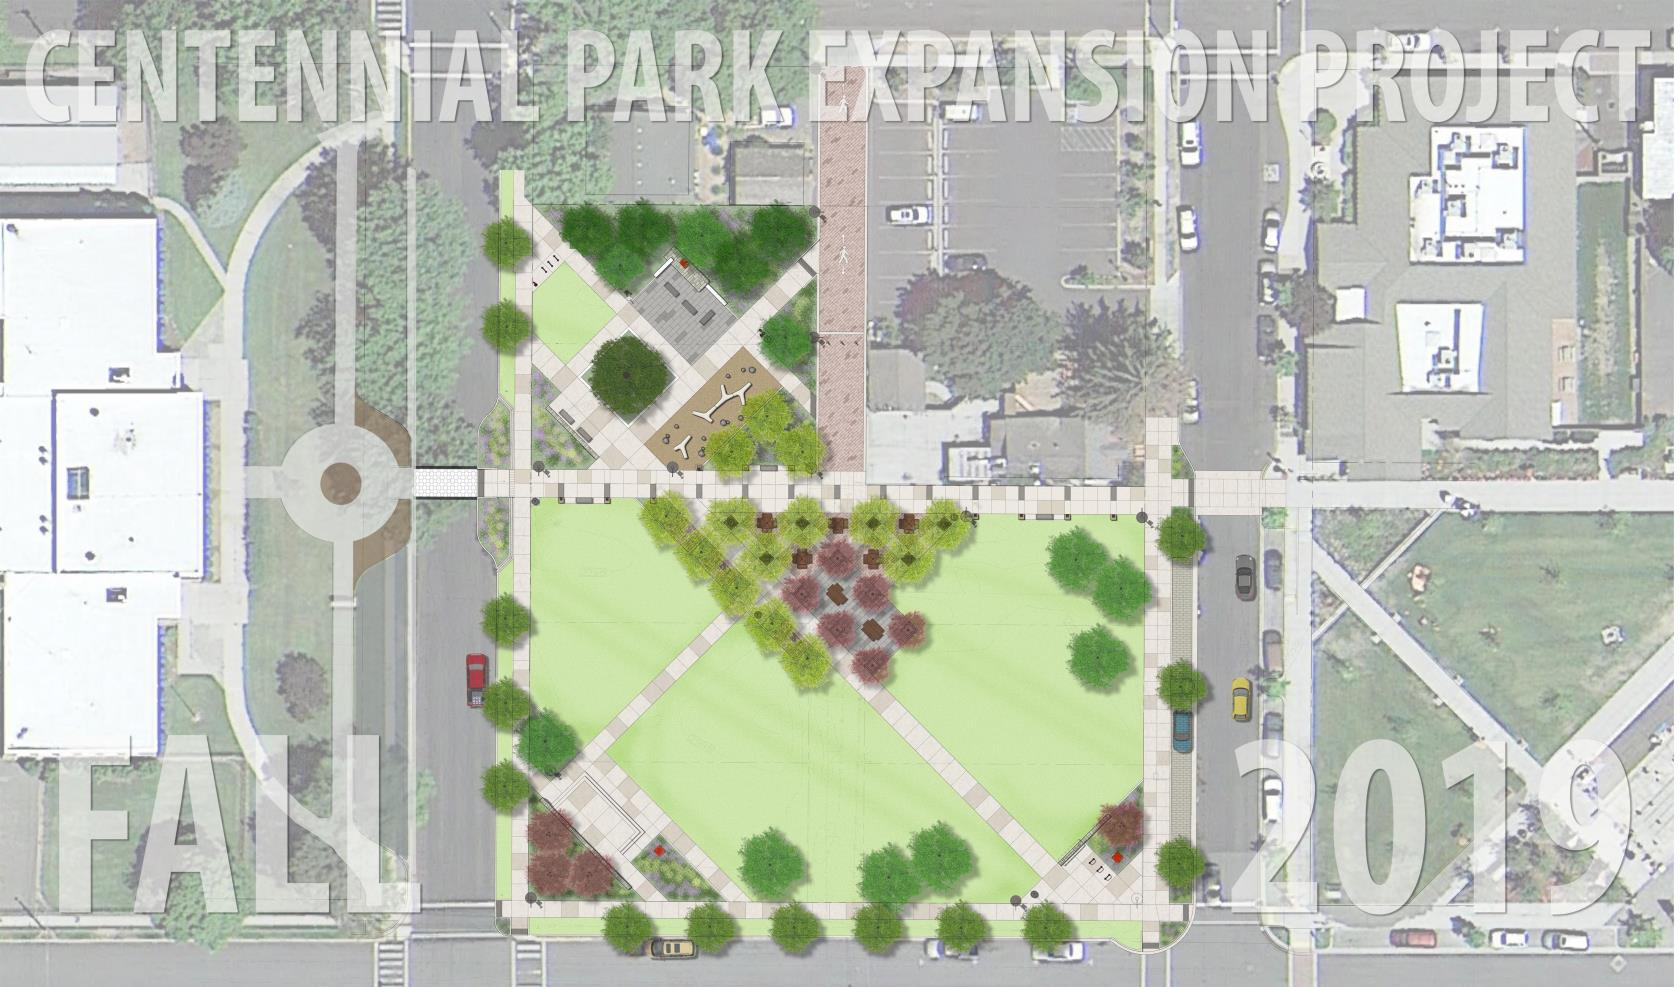 Centennial Park Expansion project rendering